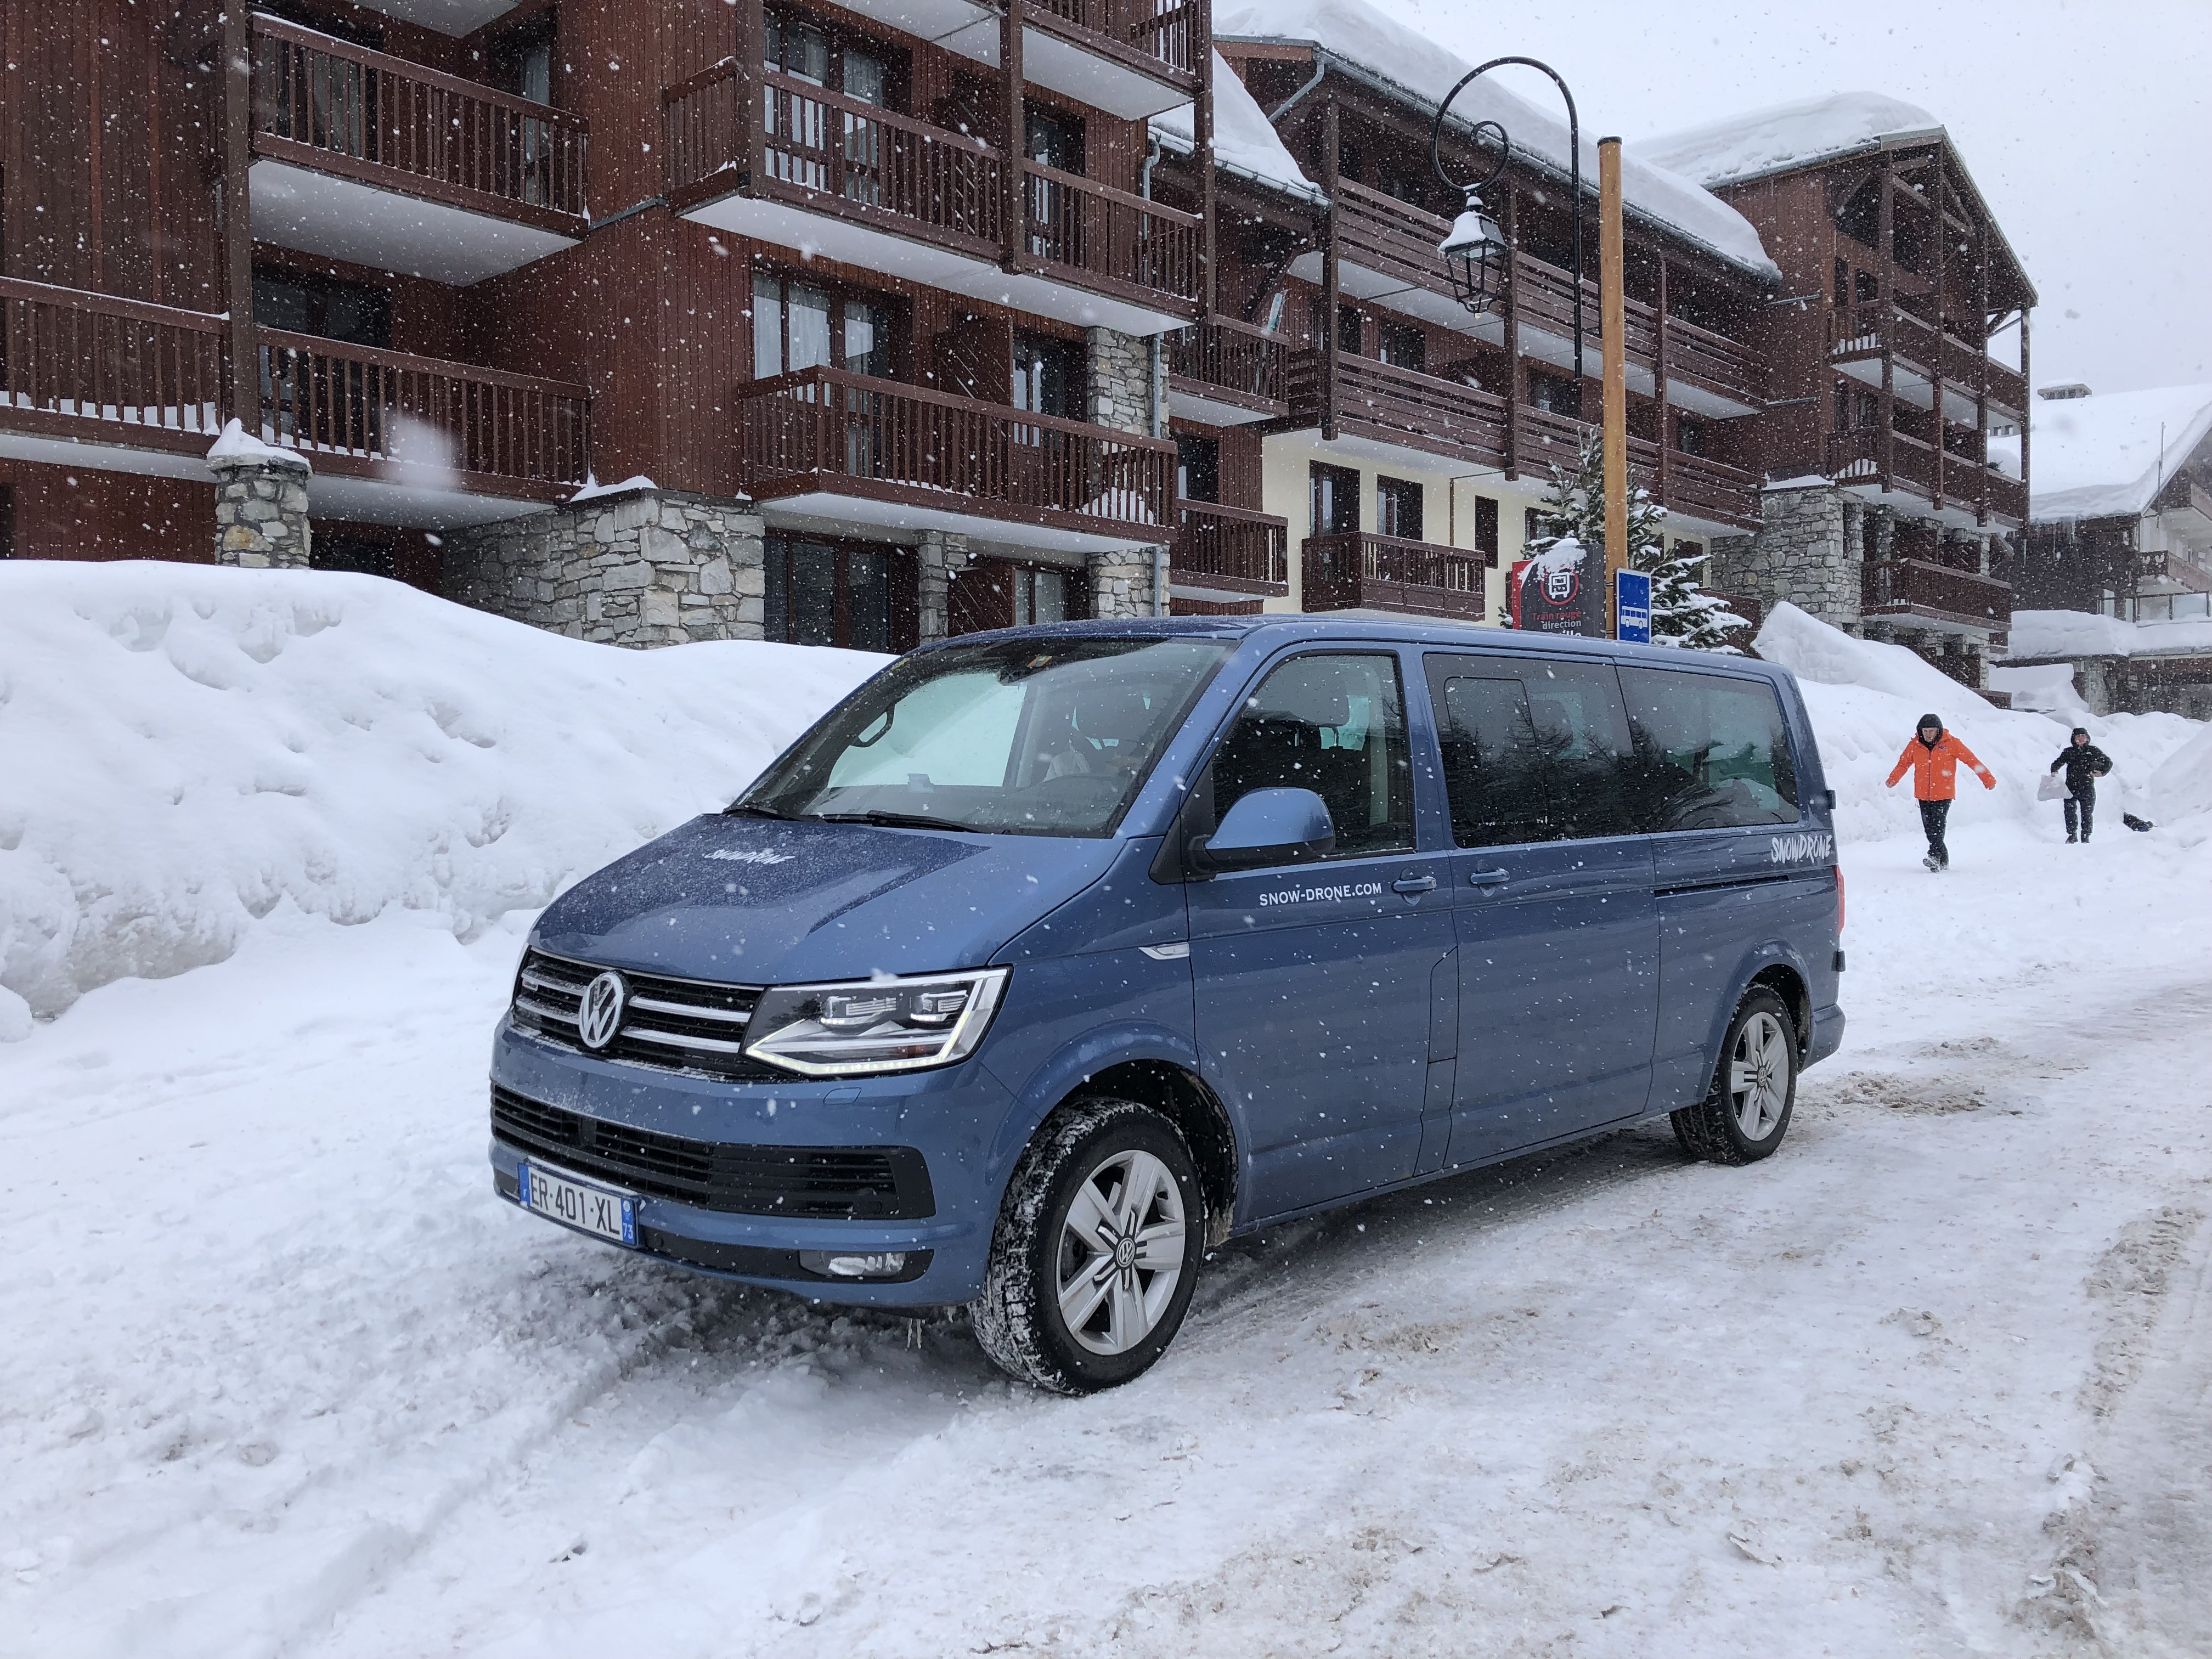 A driver from Snow Drone will meet you at arrivals to transport you to Val d'Isère. Photo by Carrie Coolidge